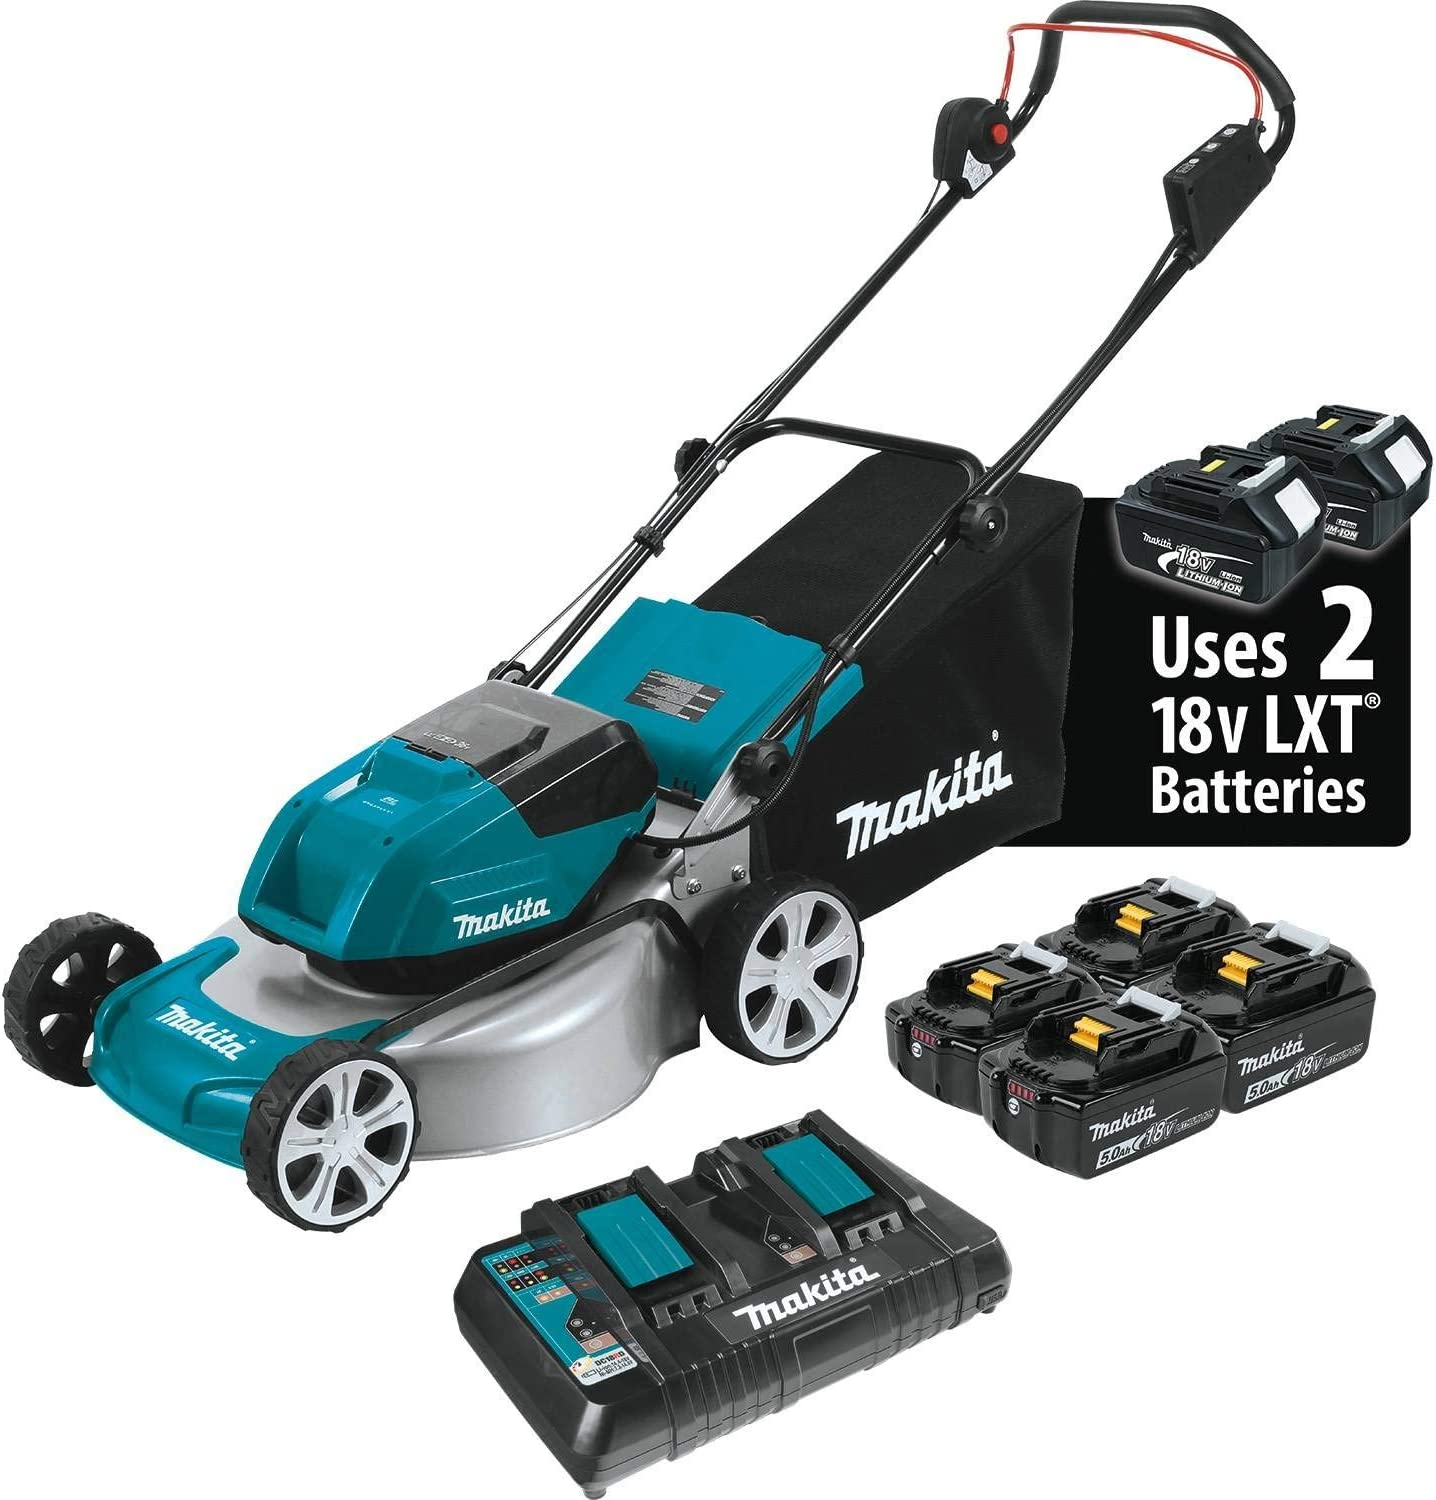 Makita XML03PT1 battery Lawn Mower